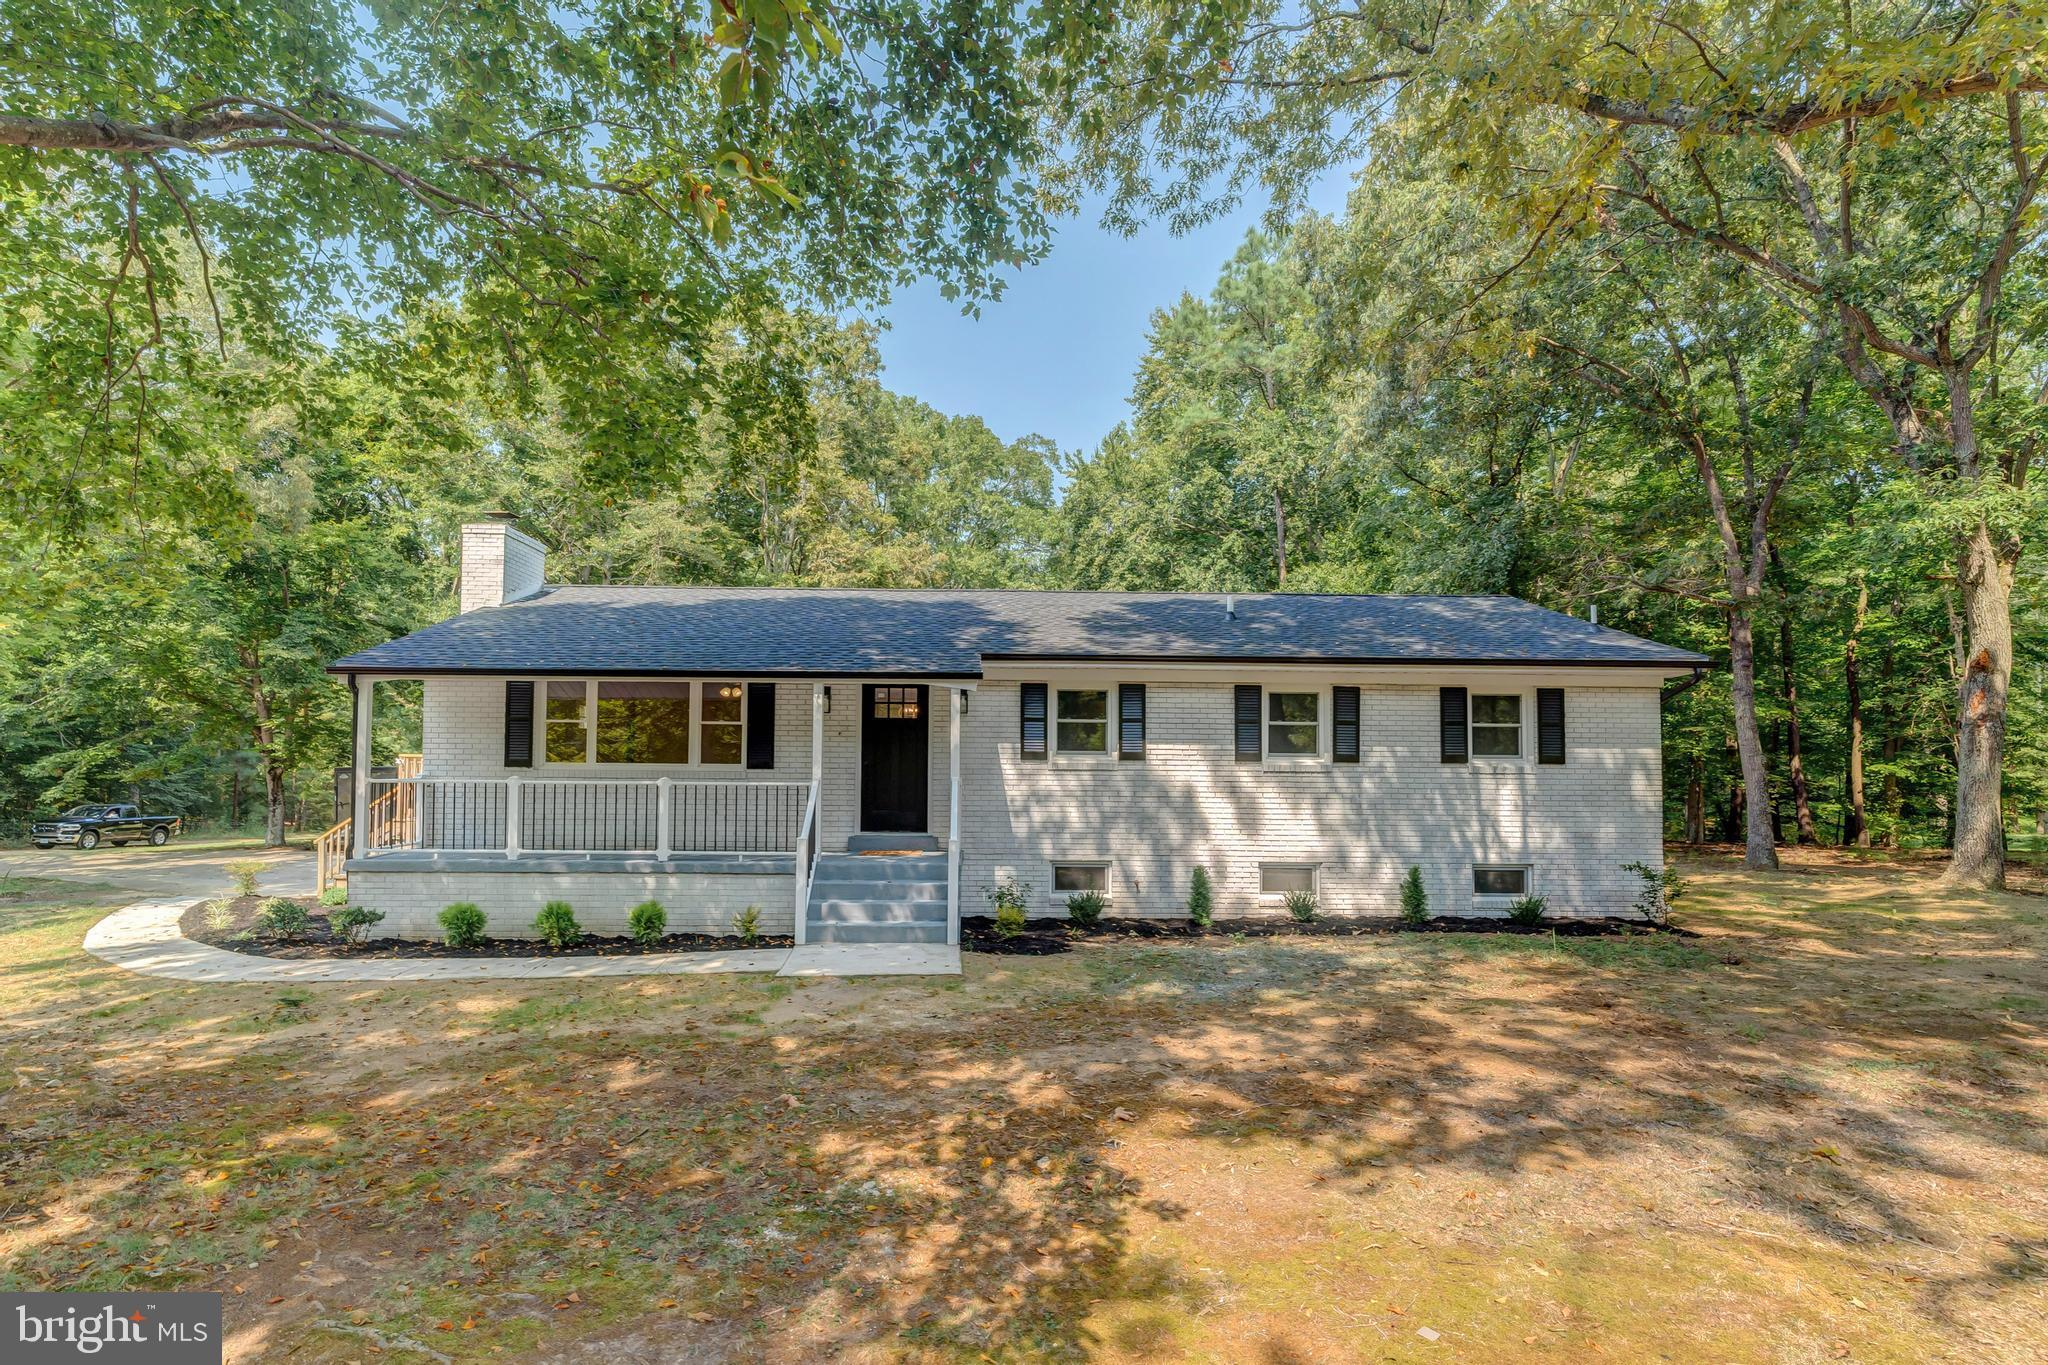 Country living at its finest! Welcome HOME! This 6 Bed, 3 Bath rambler with a basement, sits on 2 +